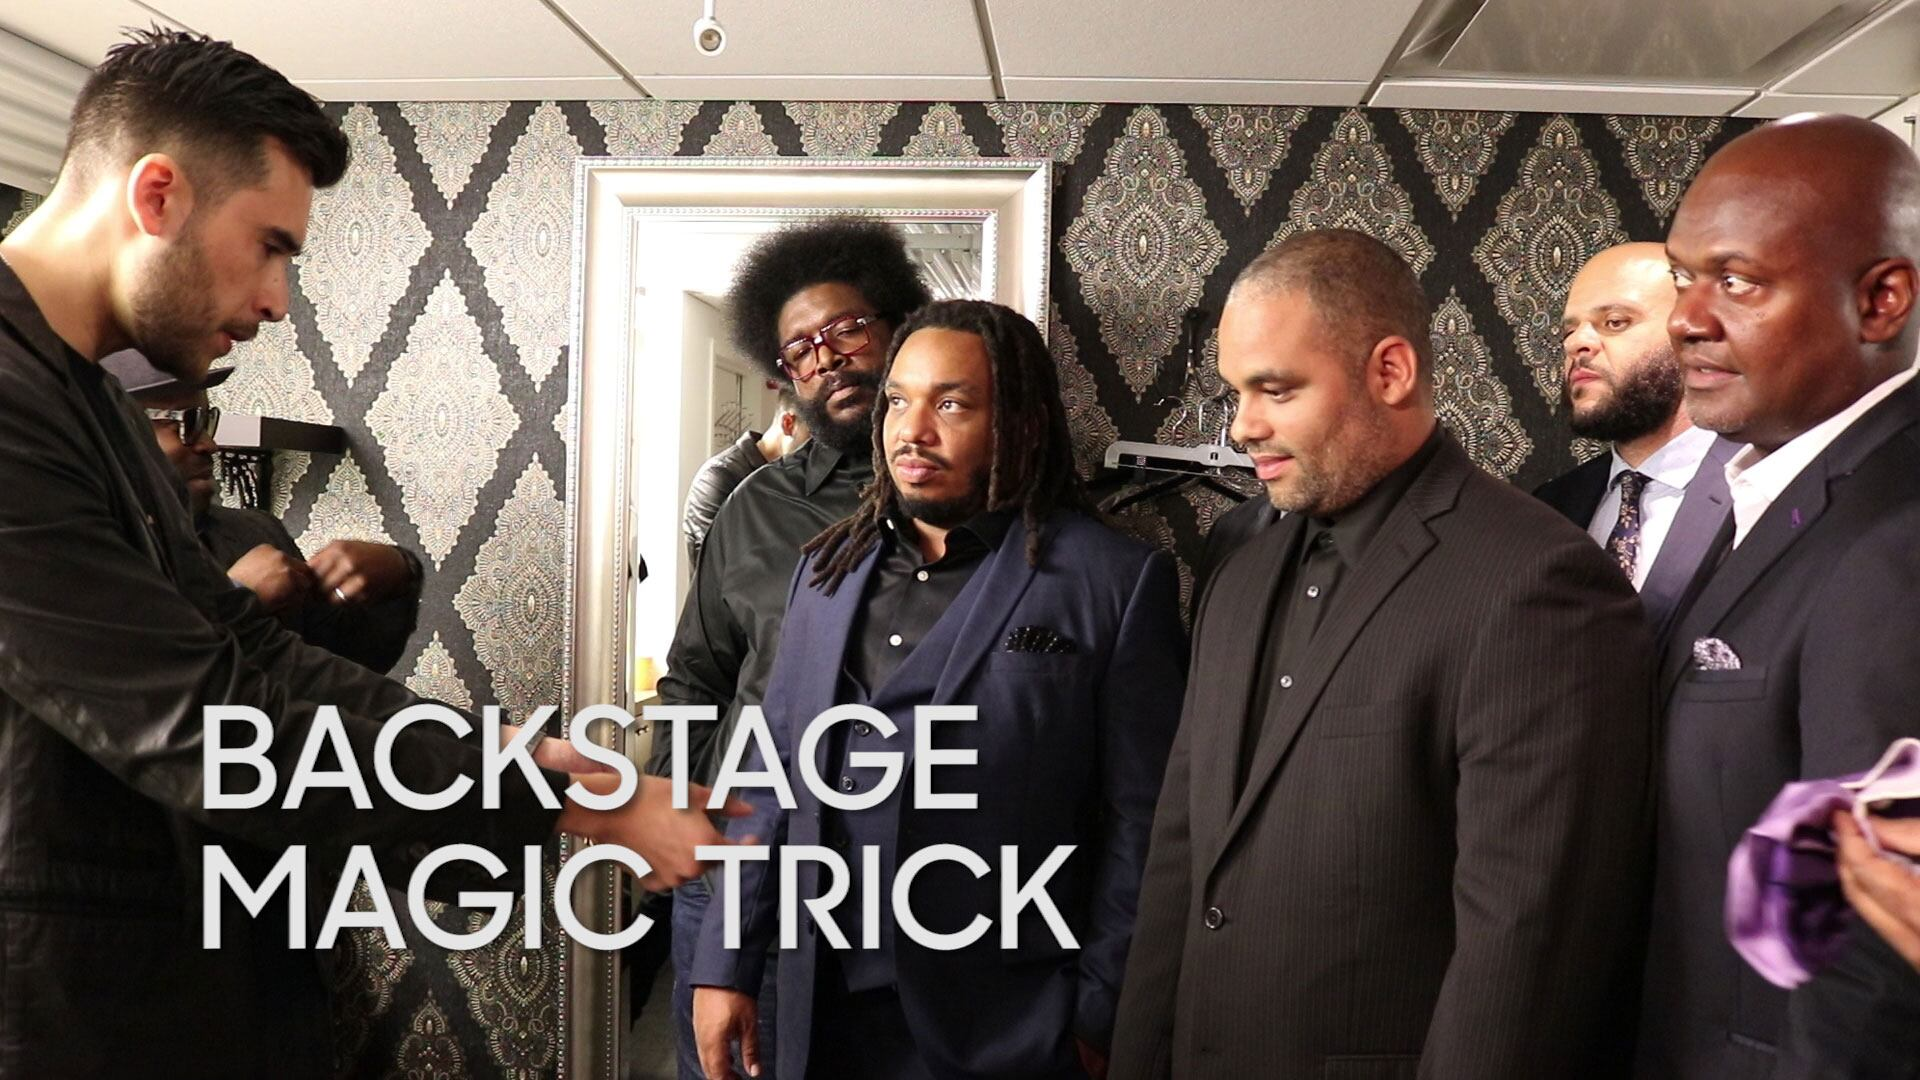 Backstage Magic Trick: Dan White Returns! (with The Roots)